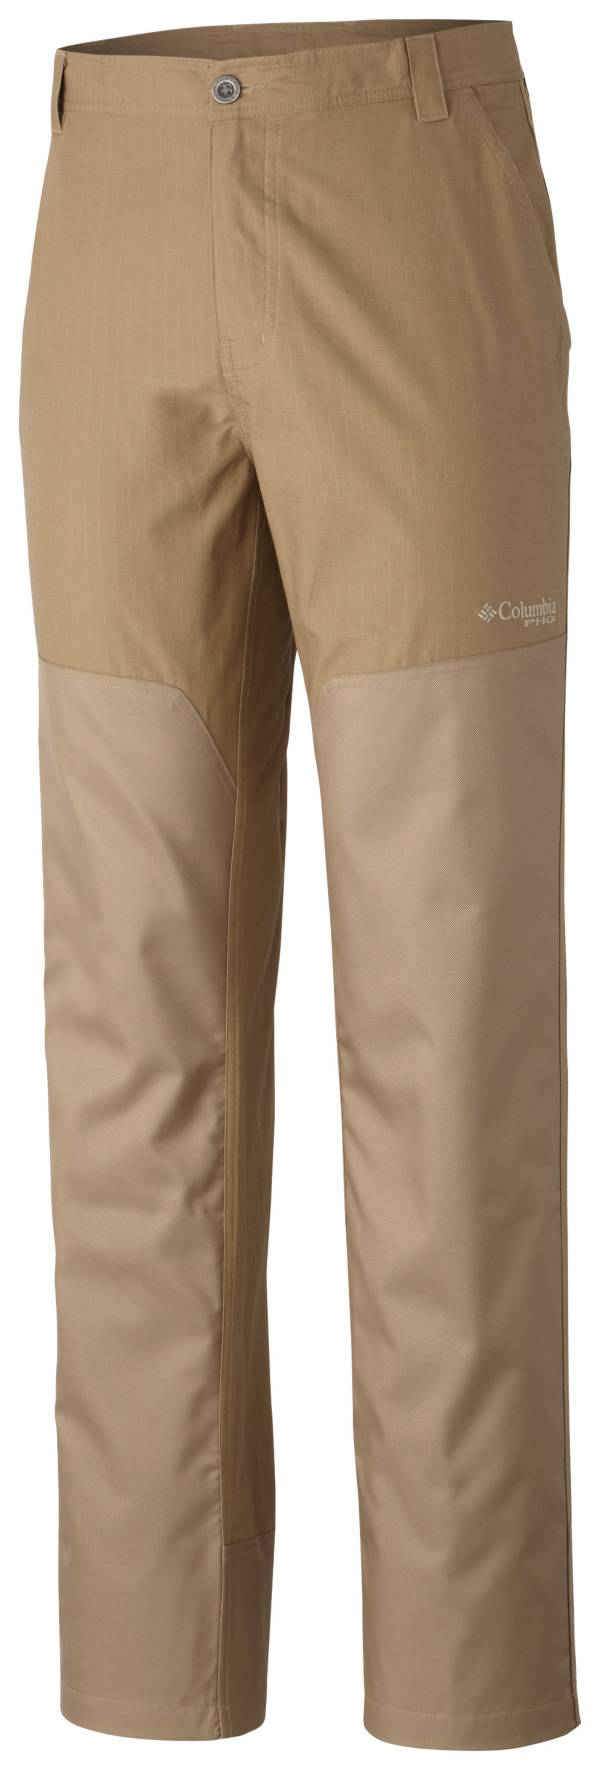 Columbia Men's Ptarmigan Hunting Pants product image